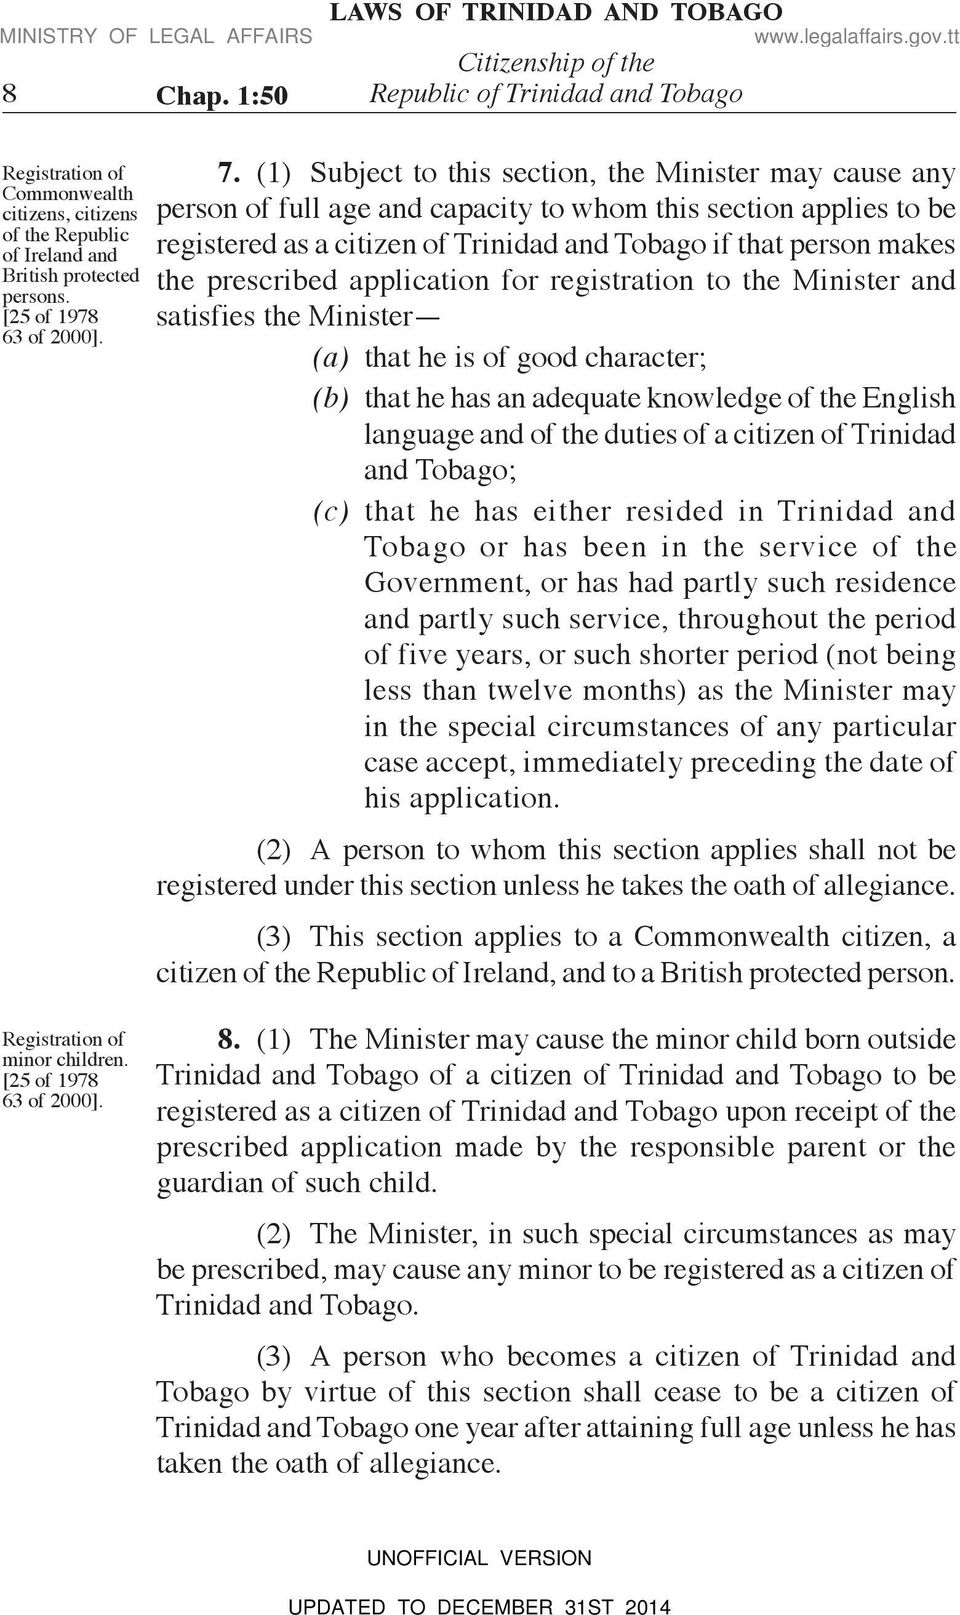 (1) Subject to this section, the Minister may cause any person of full age and capacity to whom this section applies to be registered as a citizen of Trinidad and Tobago if that person makes the